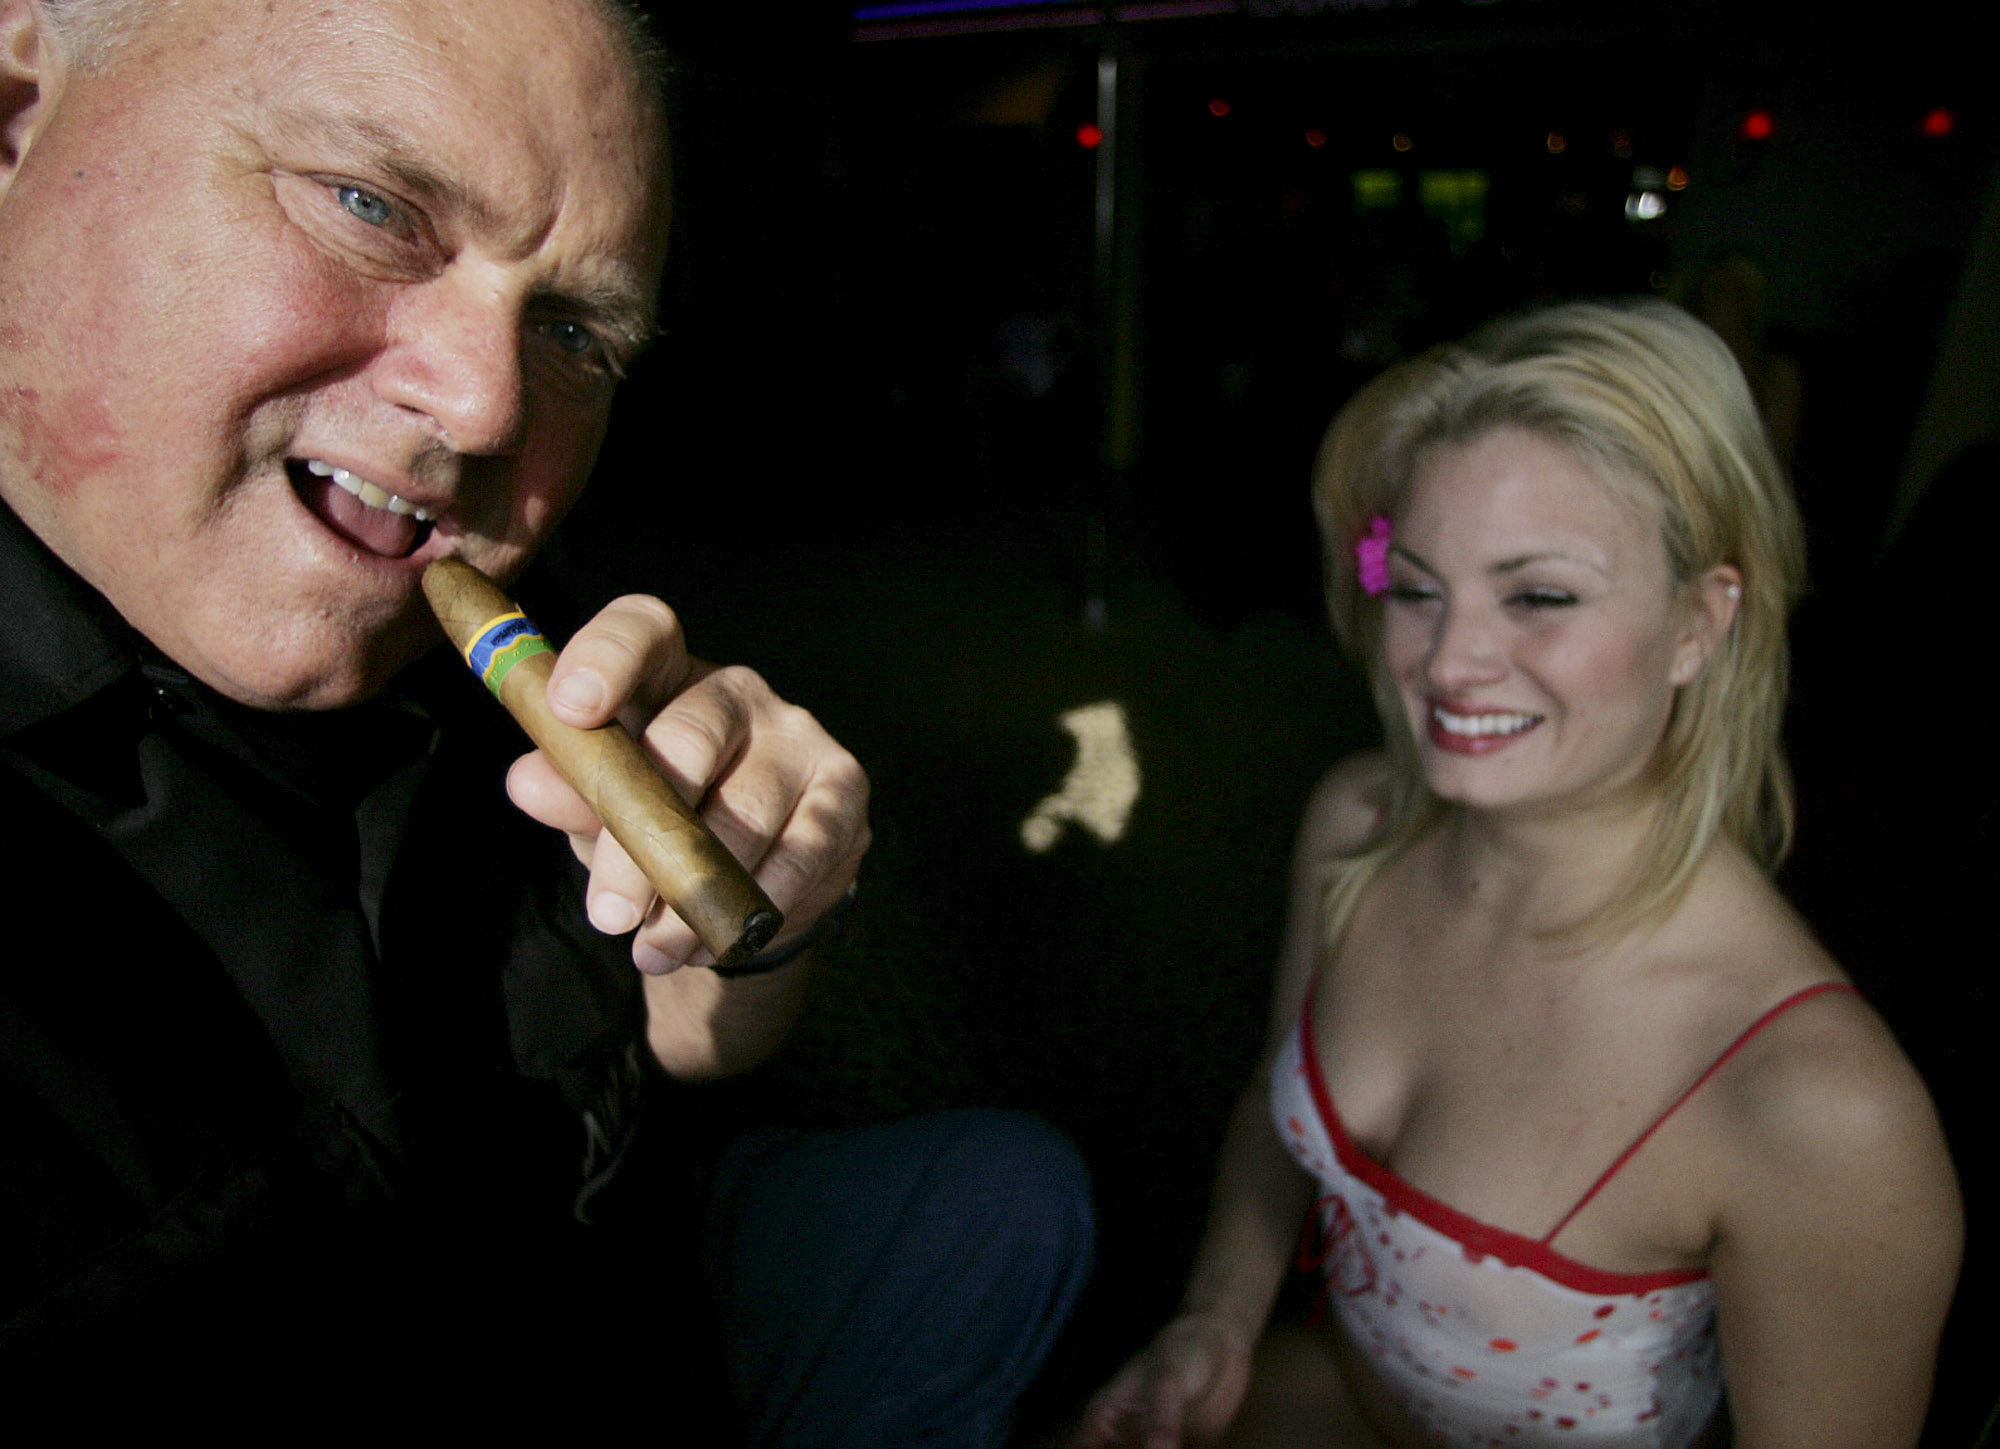 Moonlite BunnyRanch owner Dennis Hof smokes a cigar at his brothel's entrance, Thursday, April 7, 2005, in Mound House, Nev. (AP Photo/Brad Horn)